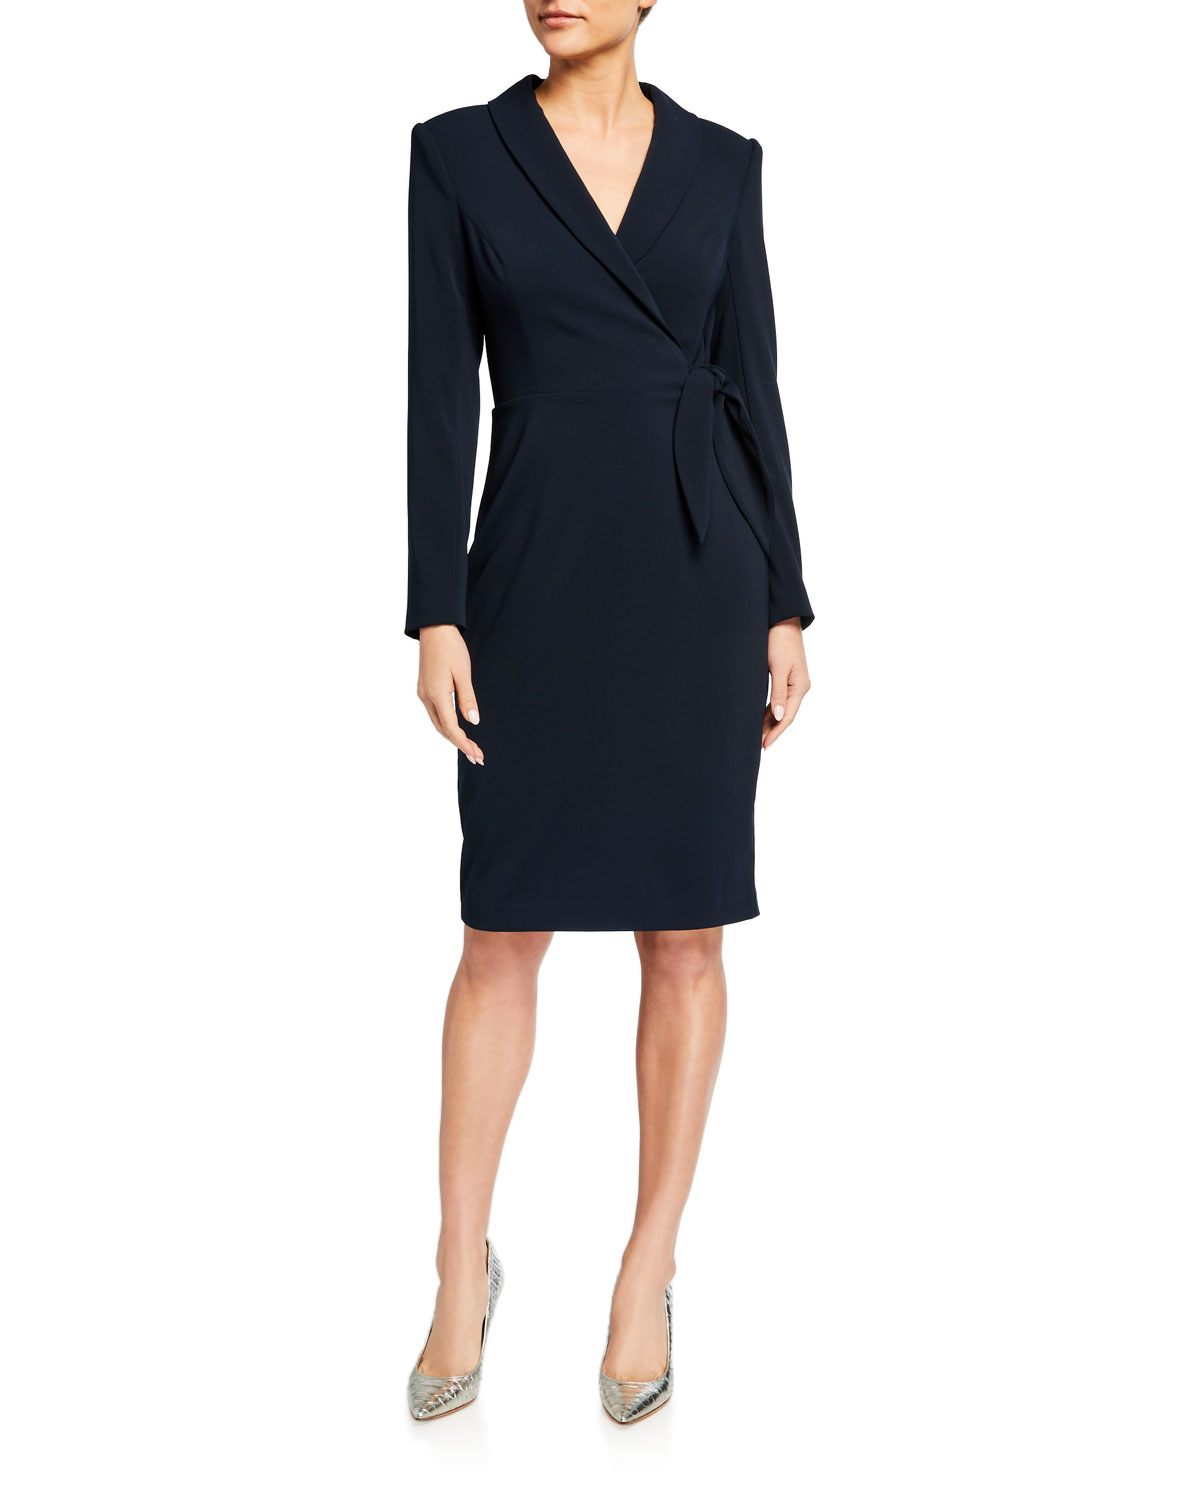 Badgley Mischka Collection Faux Wrap Tuxedo Dress